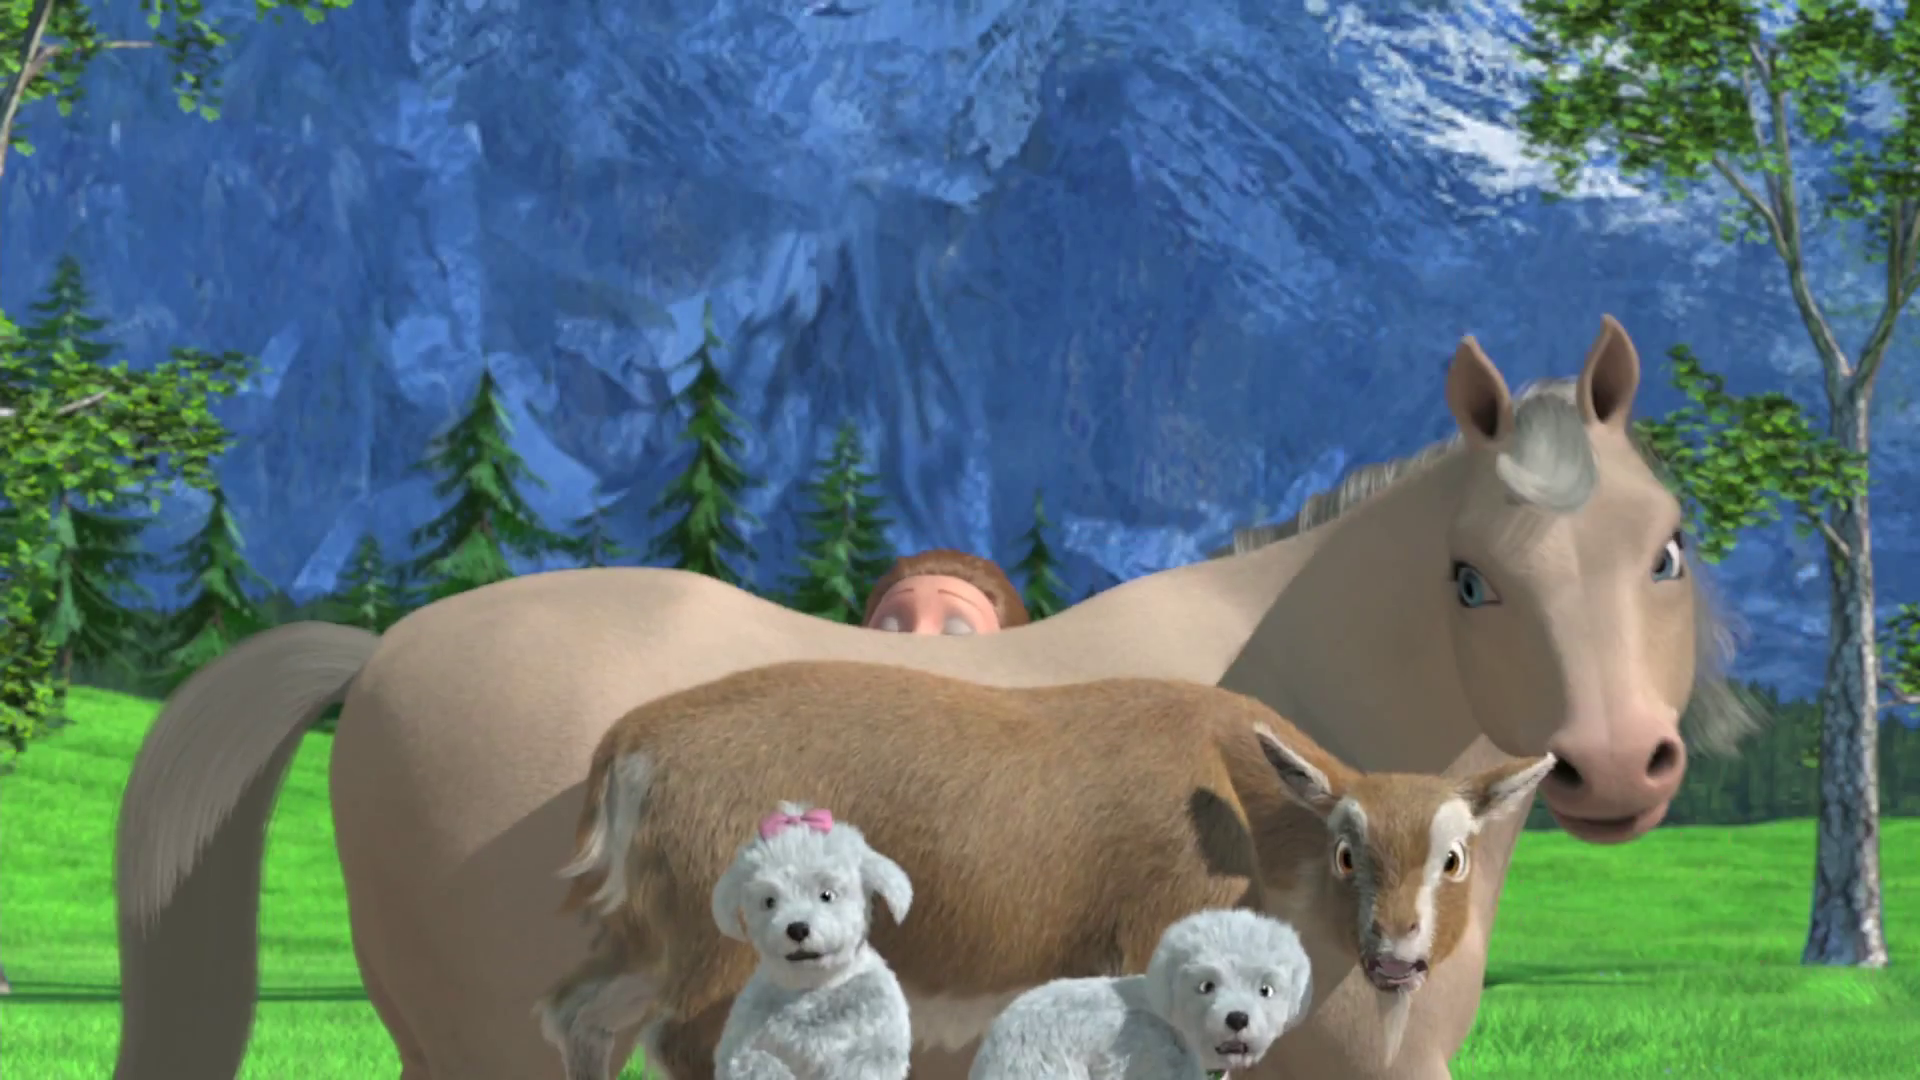 Barbie & Her Sisters in A Pony Tale Bloopers HQ